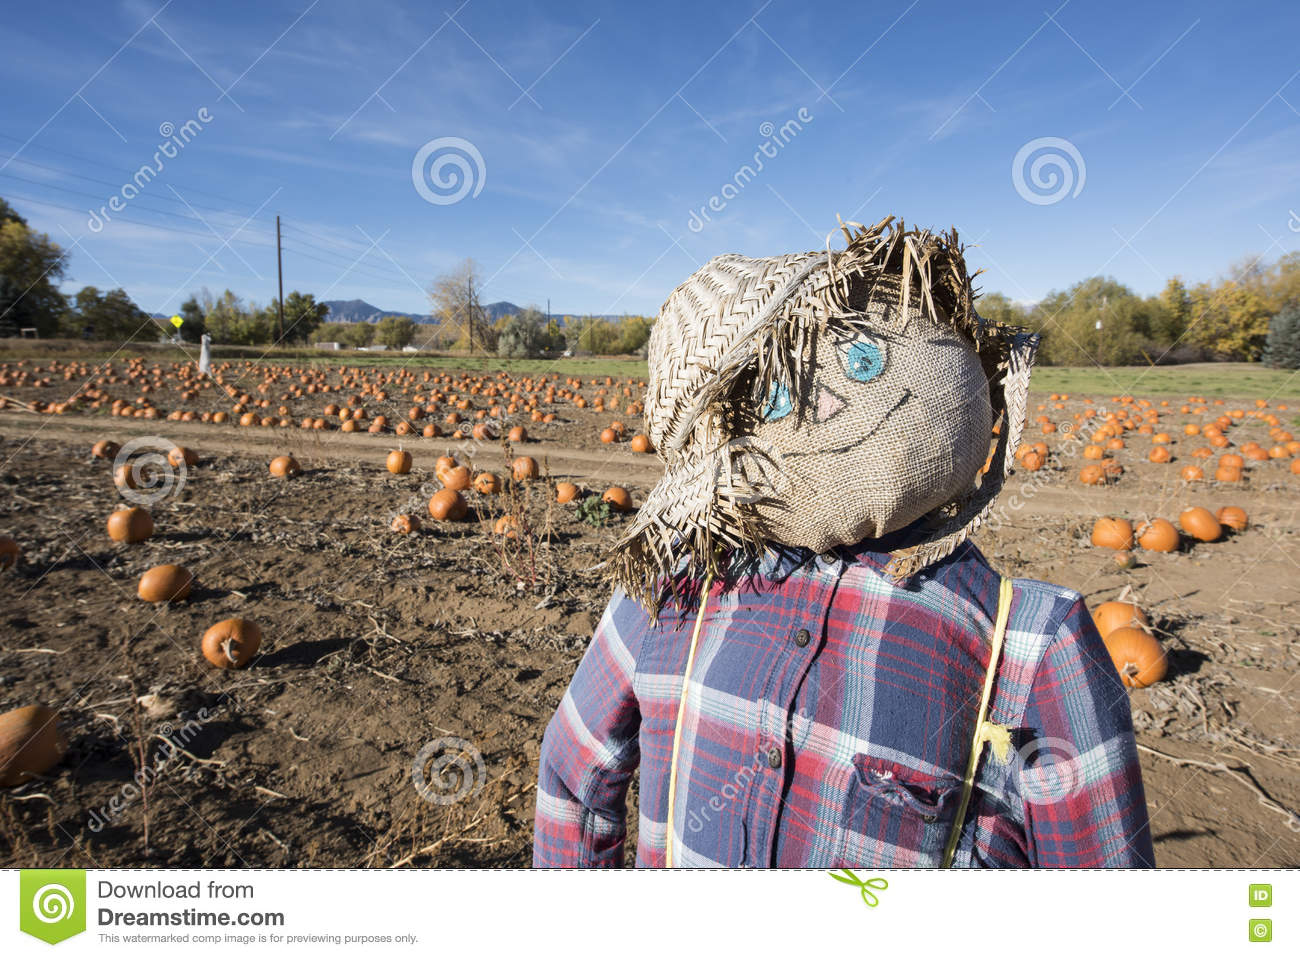 Scarecrow in the pumpkin patch